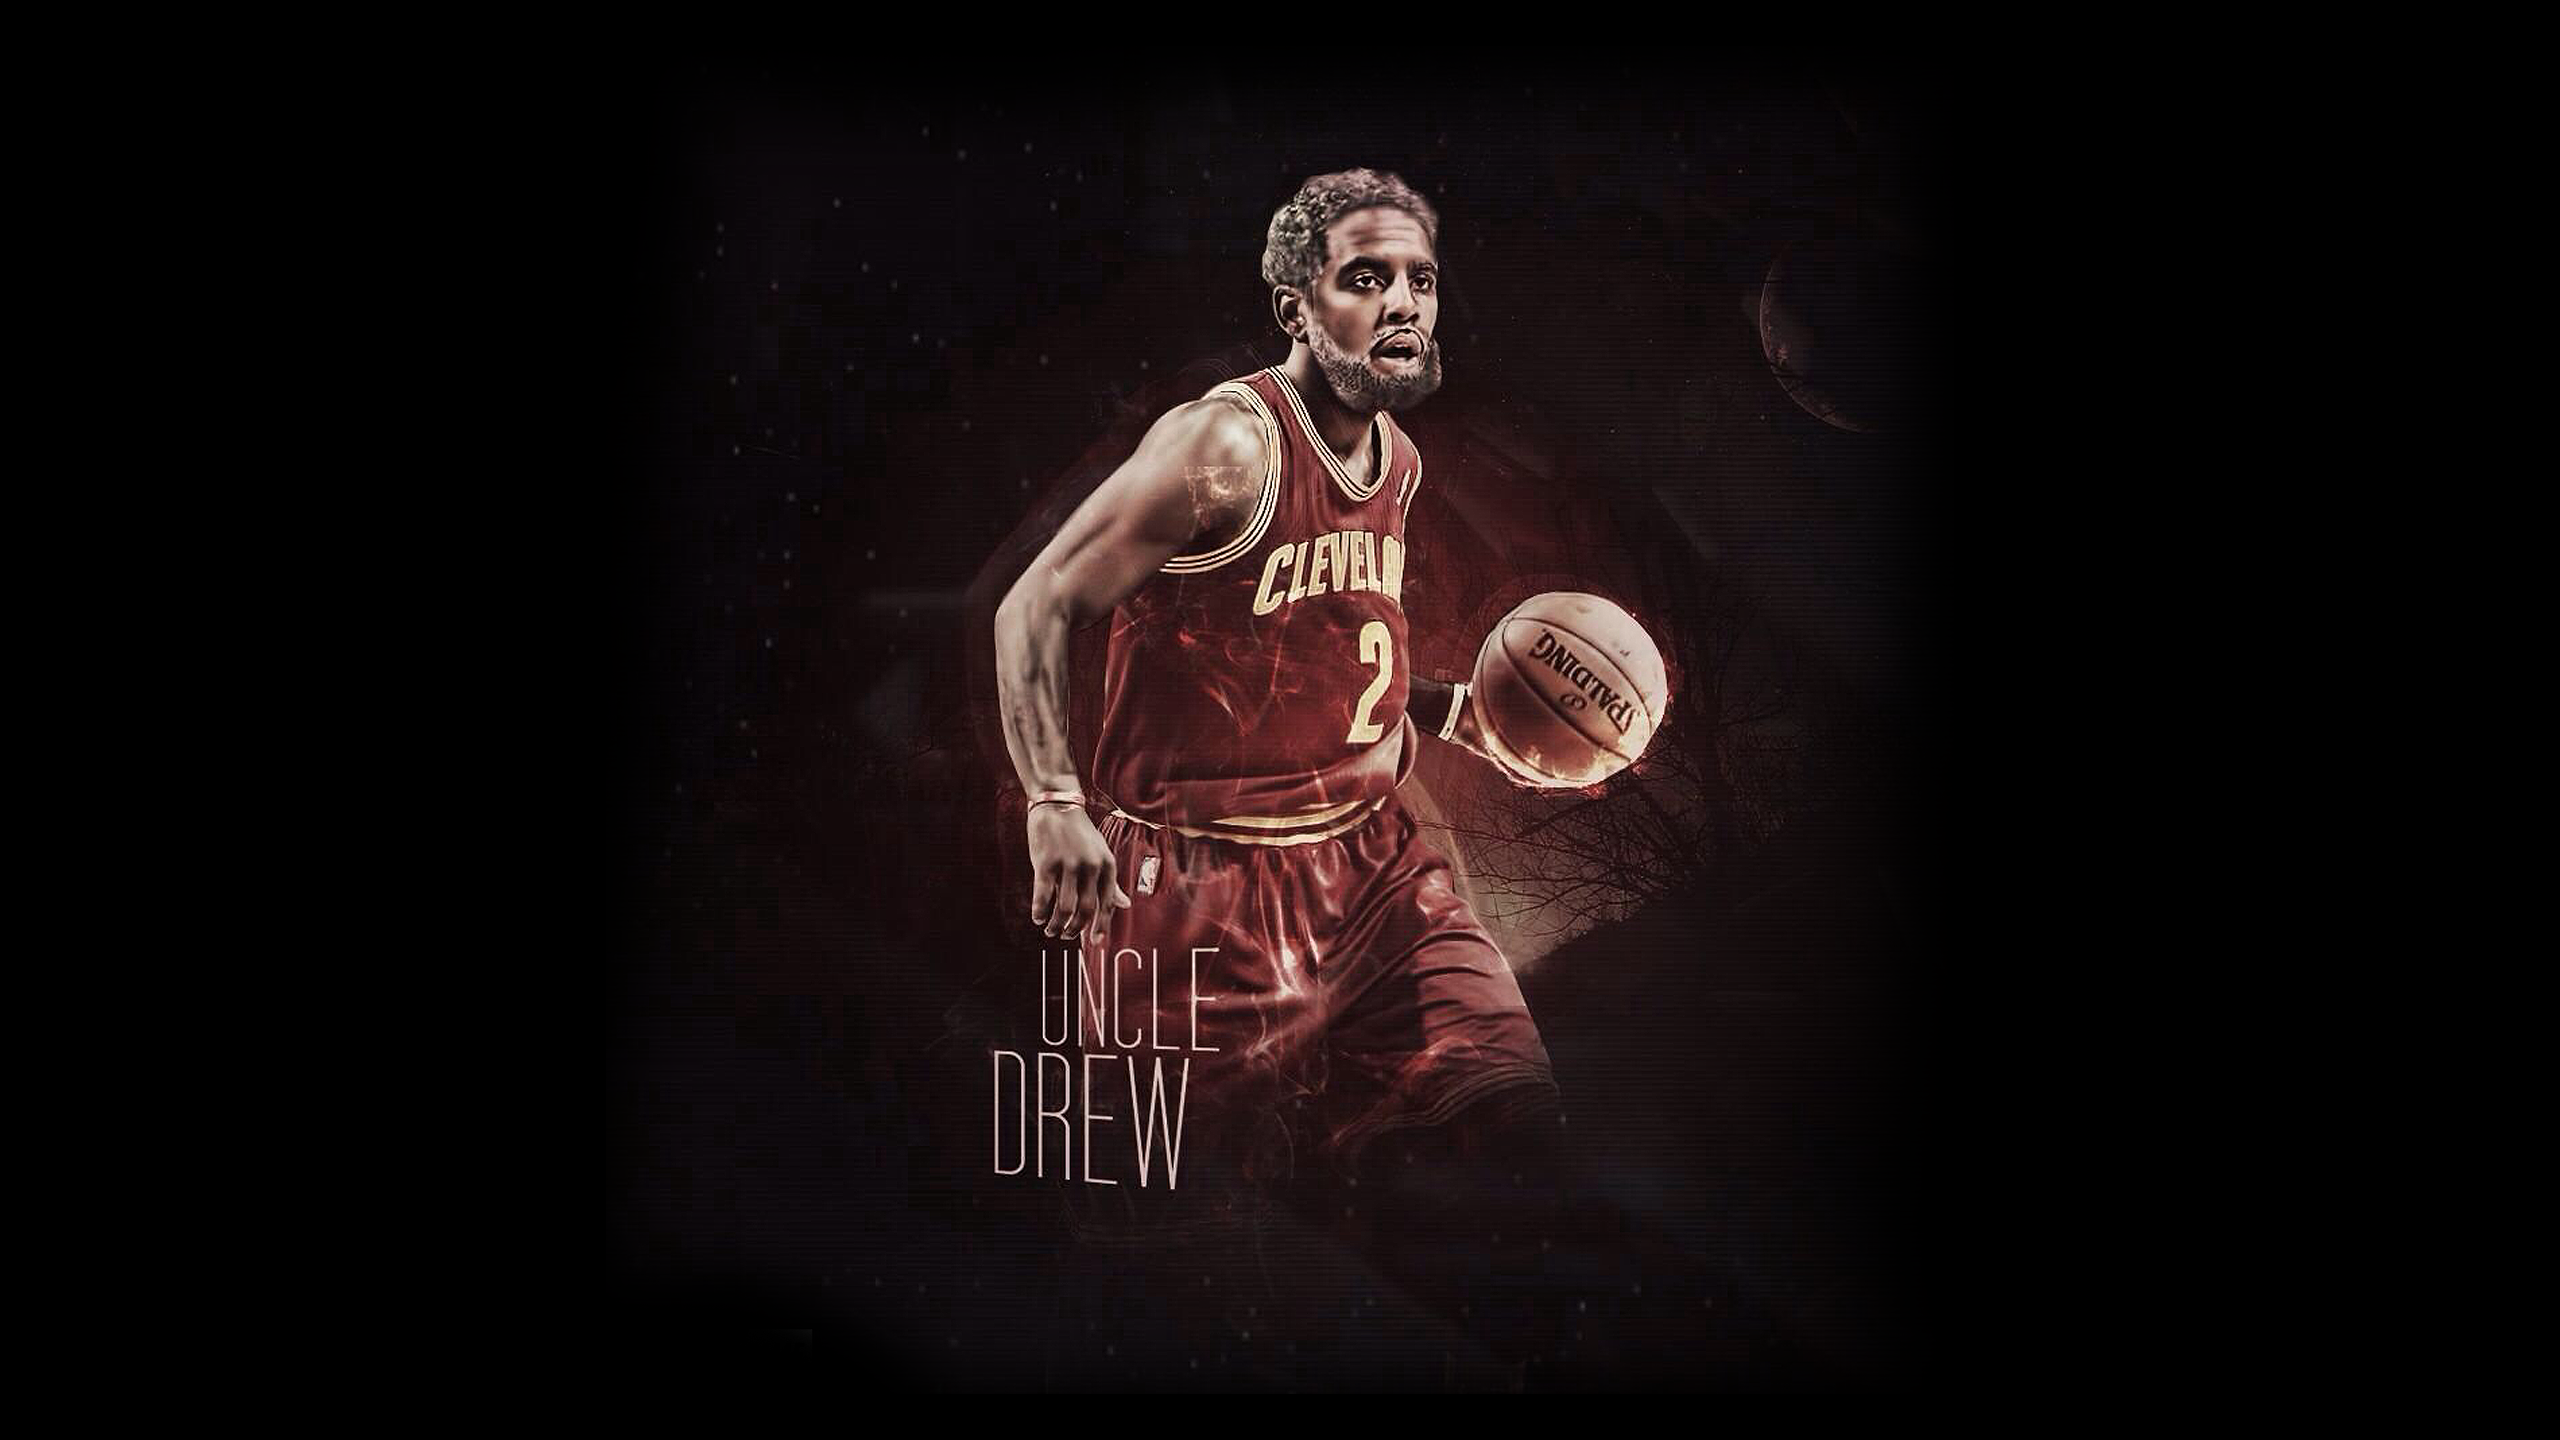 Fan Wallpapers Cleveland Cavaliers 2560x1440